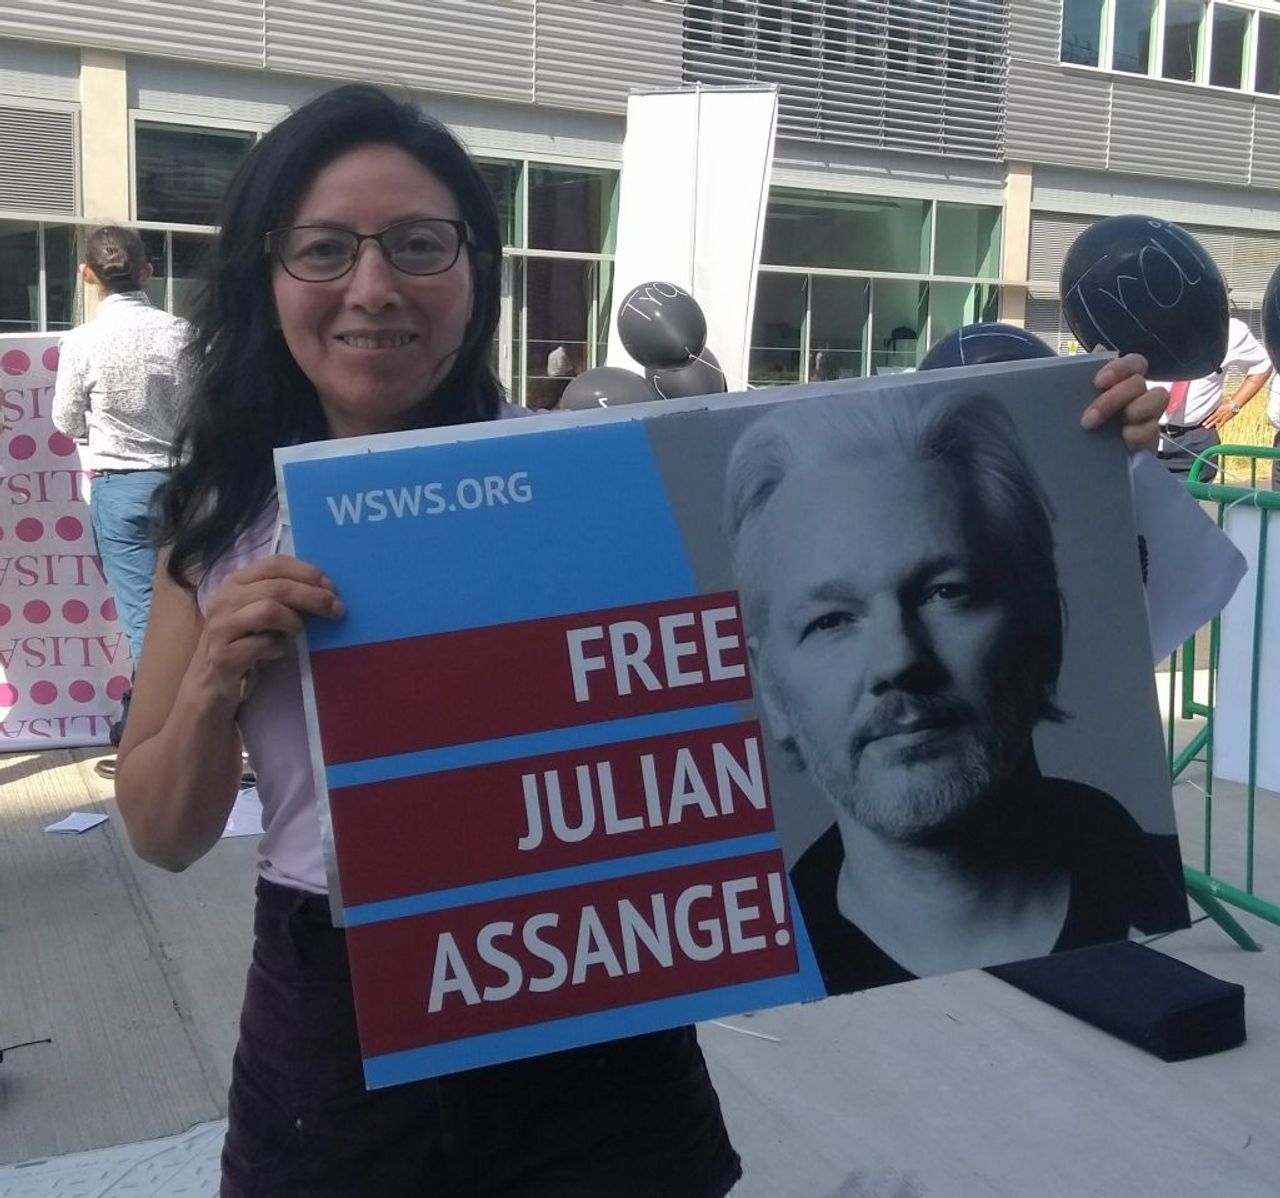 Ecuador, UK look to end Assange embassy stay